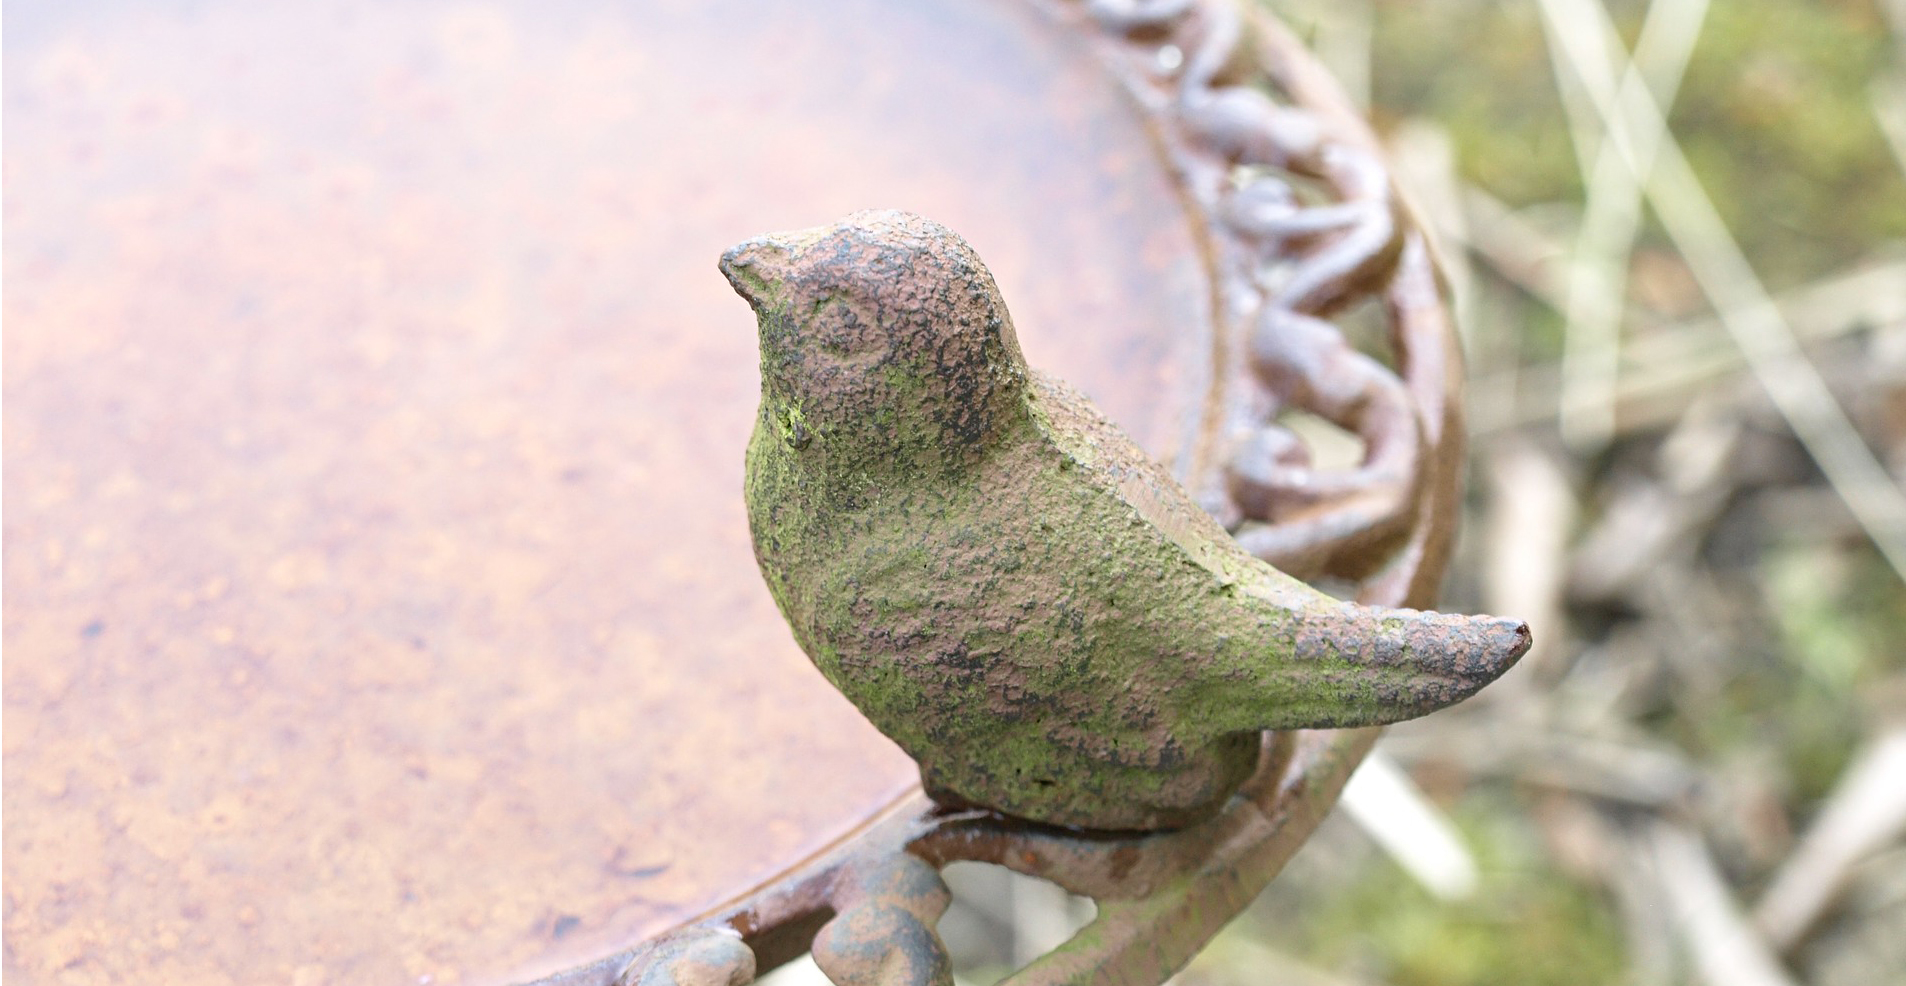 Cleaning a concrete birdbath is easy with these helpful tips!